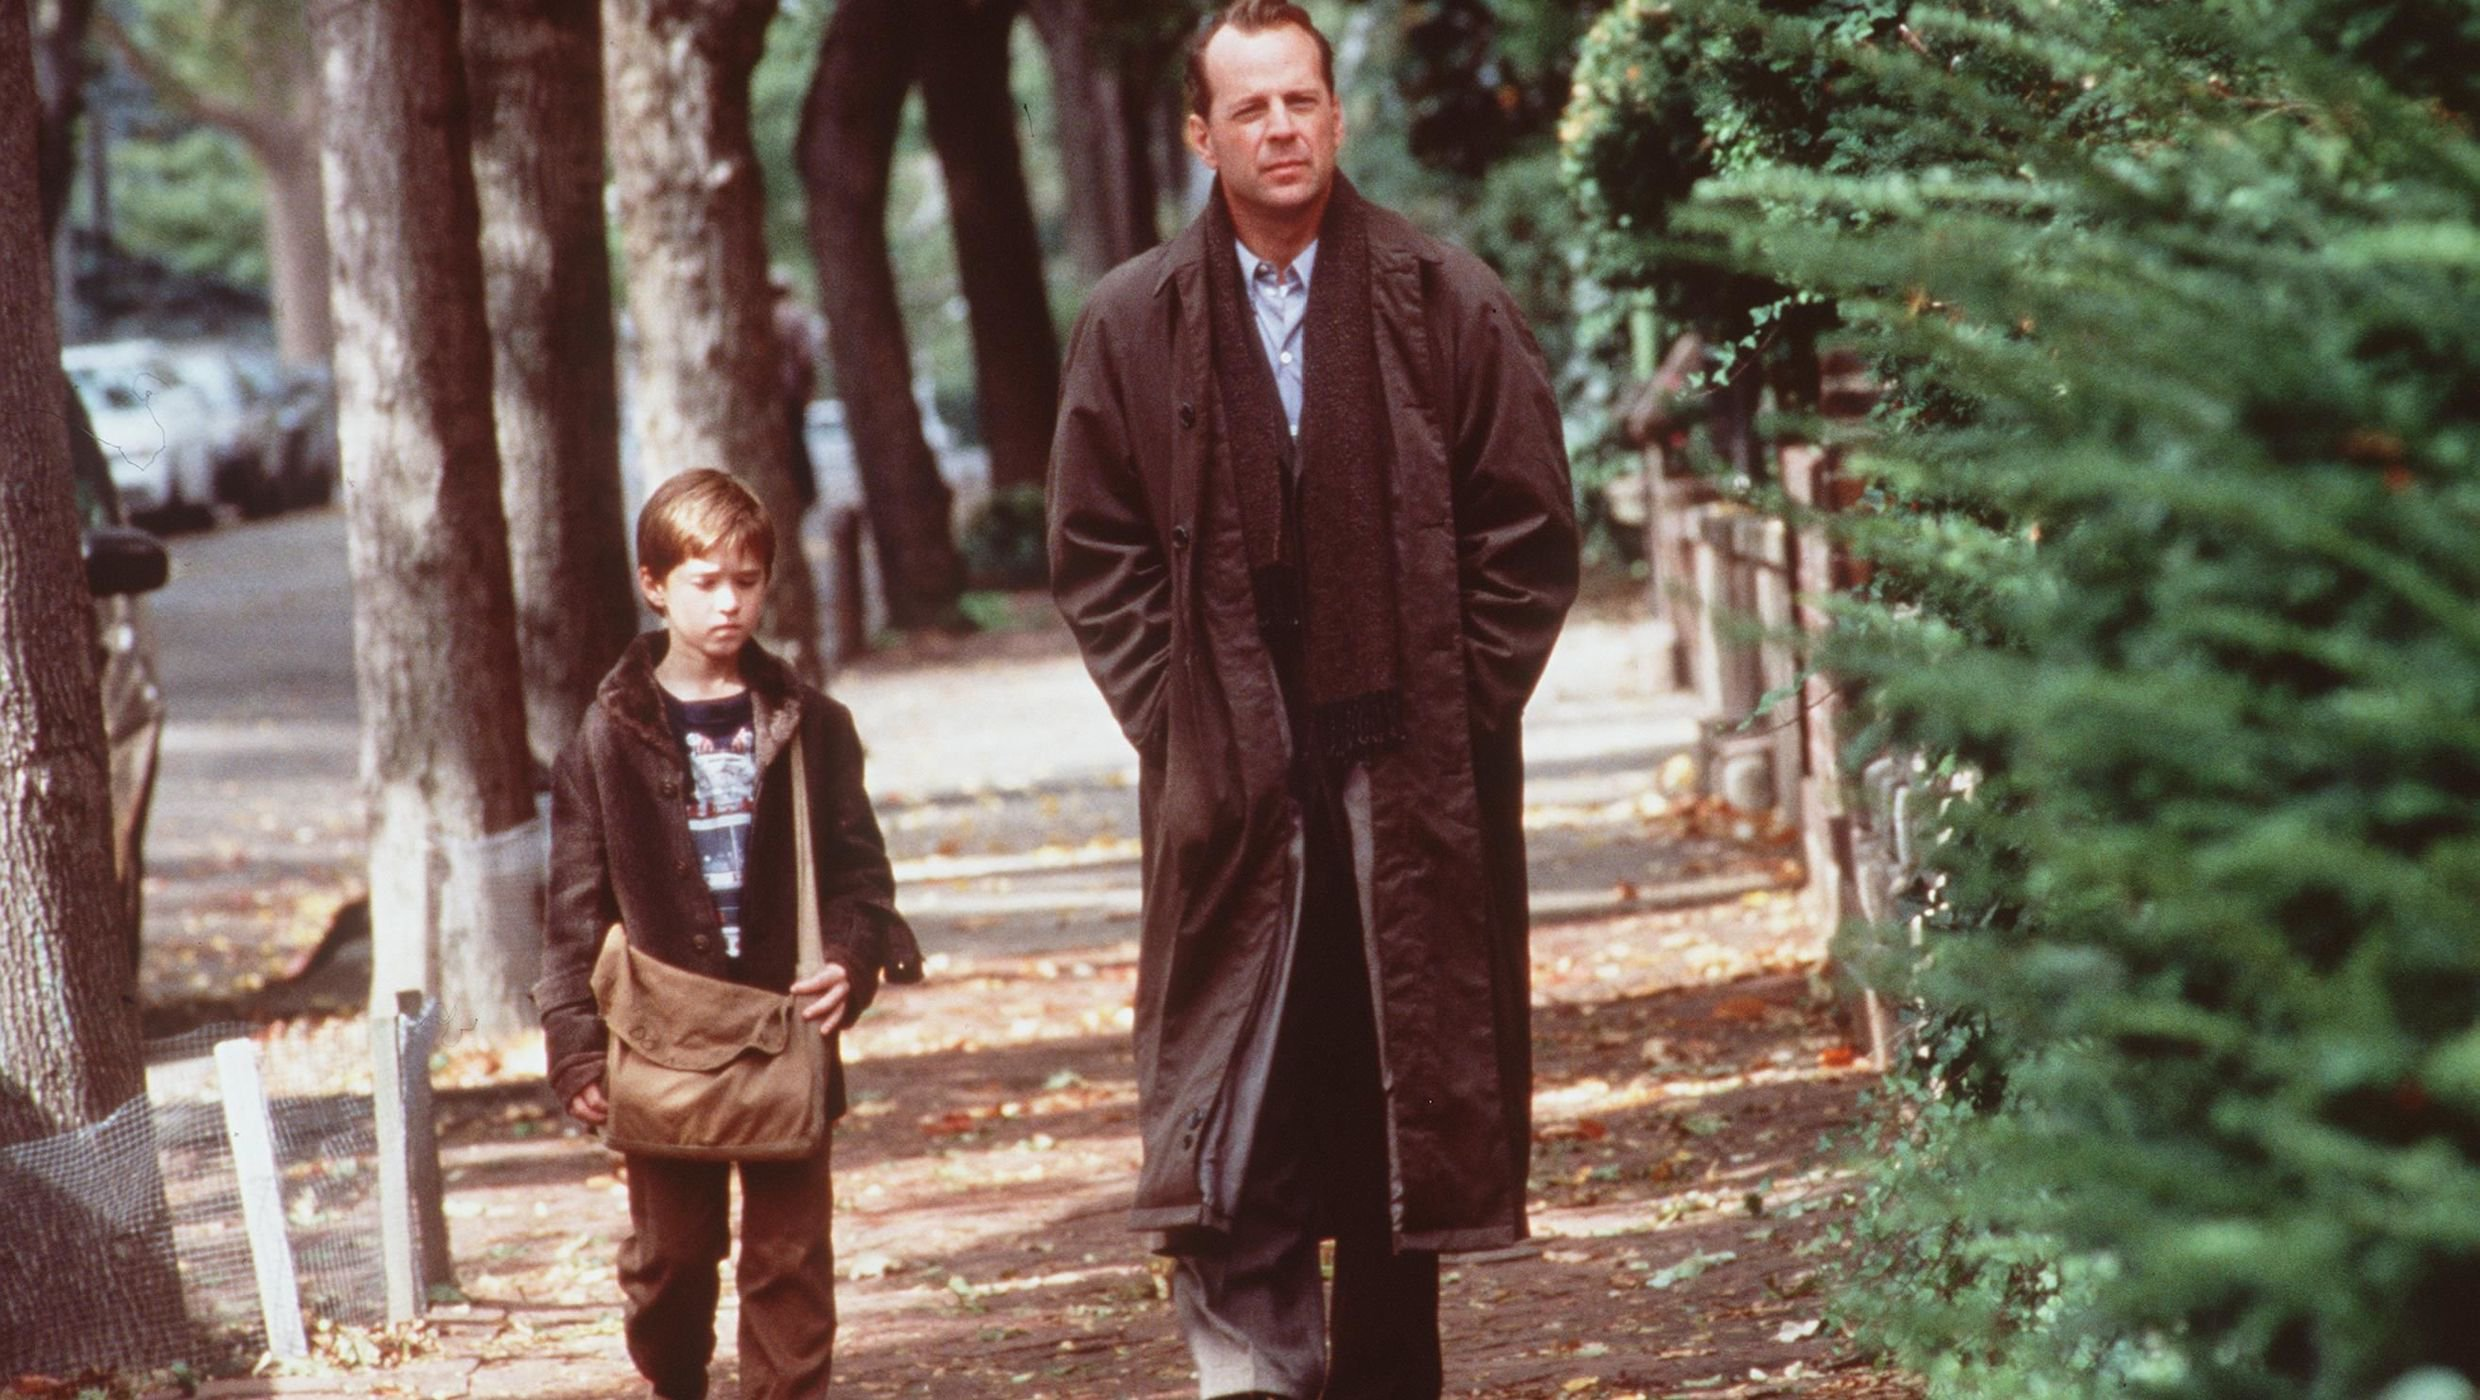 Sixth Sense: The Horror Movie That Gave Us A Life Lesson